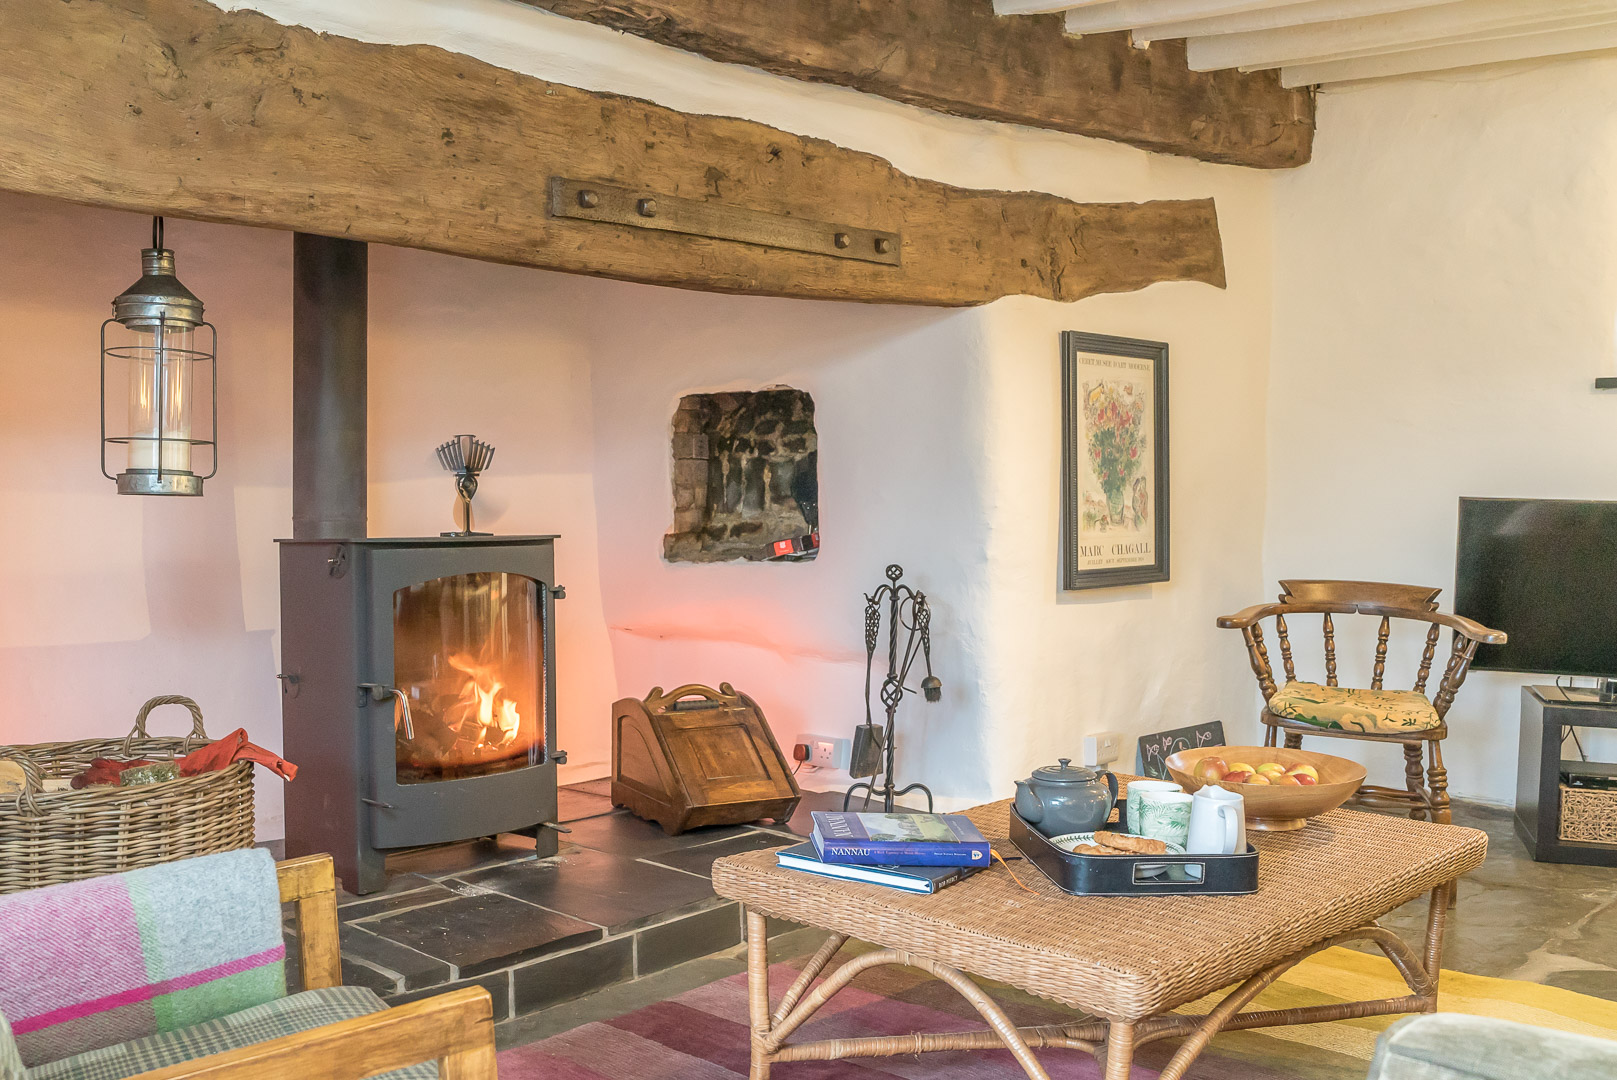 BEAUTIFUL HOLIDAY COTTAGE IN A REMOTE MOUNTAIN LOCATION | ABERGEIRW